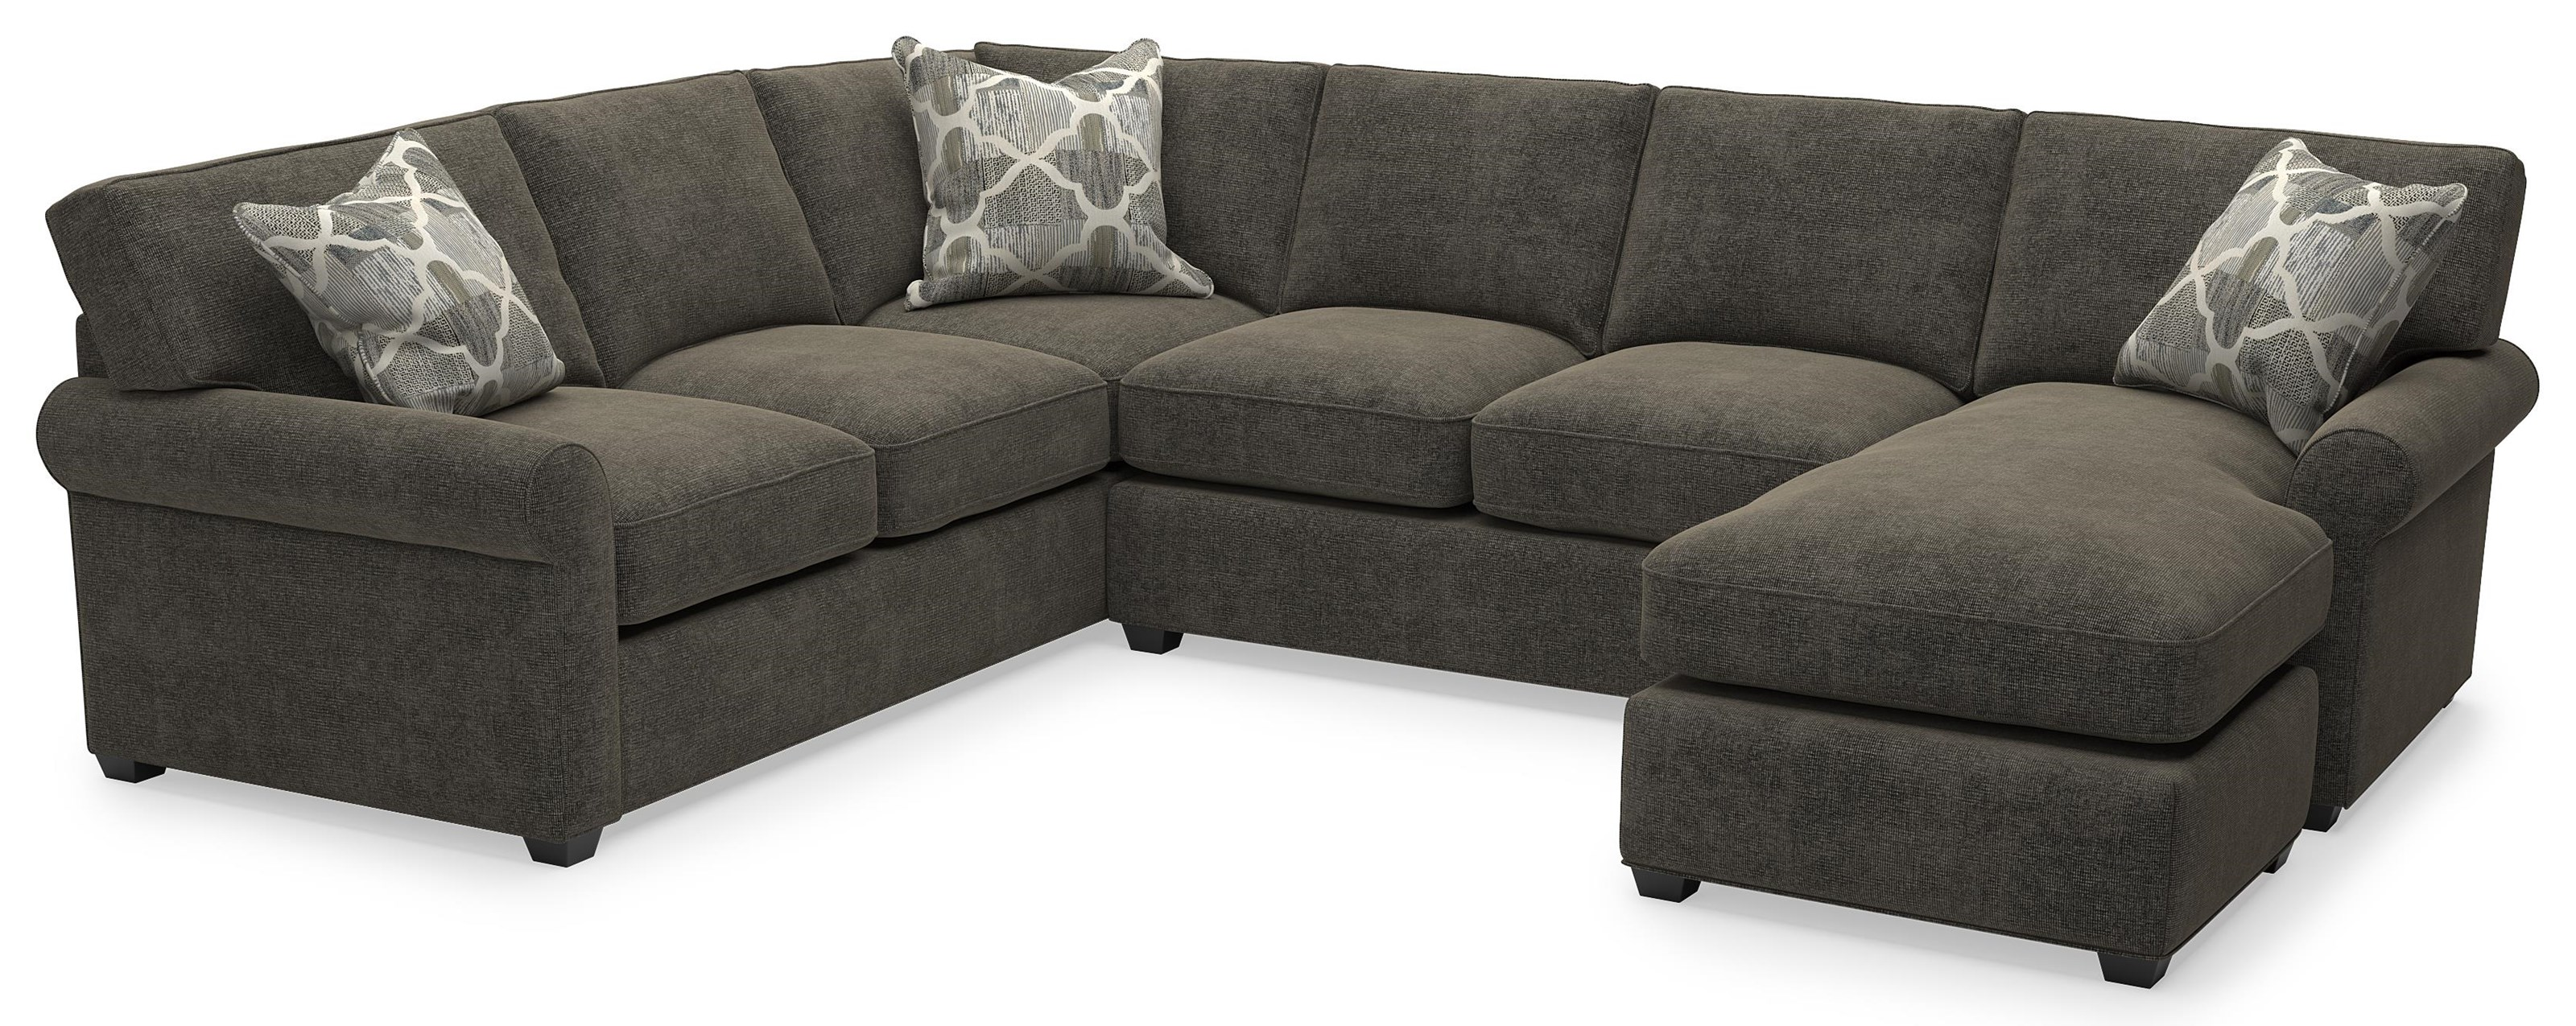 225 Transitional 2 Piece Sectional by Sunset Home at Walker's Furniture